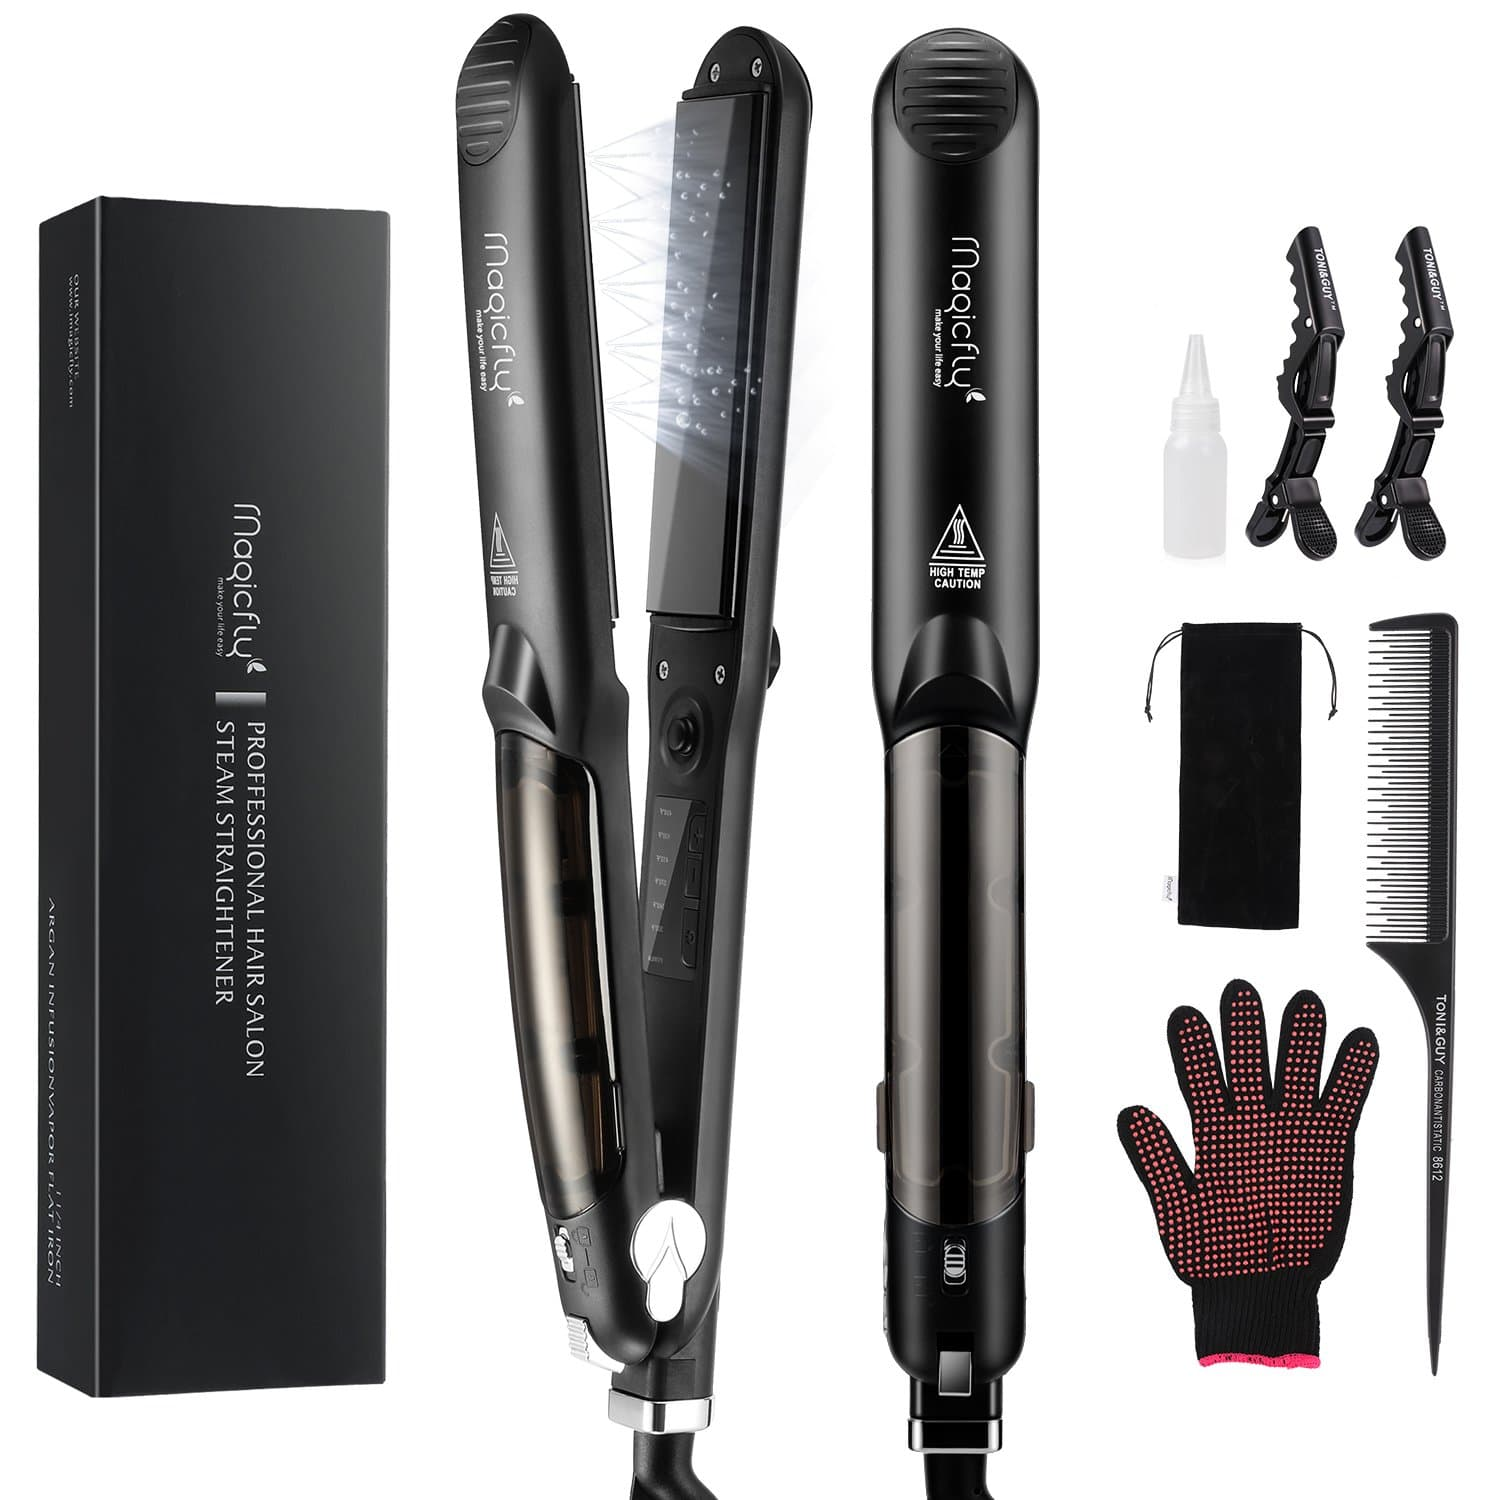 Magic Fly Professional Ceramic Steam Flat Iron – Best For Straightening And Curling Hair